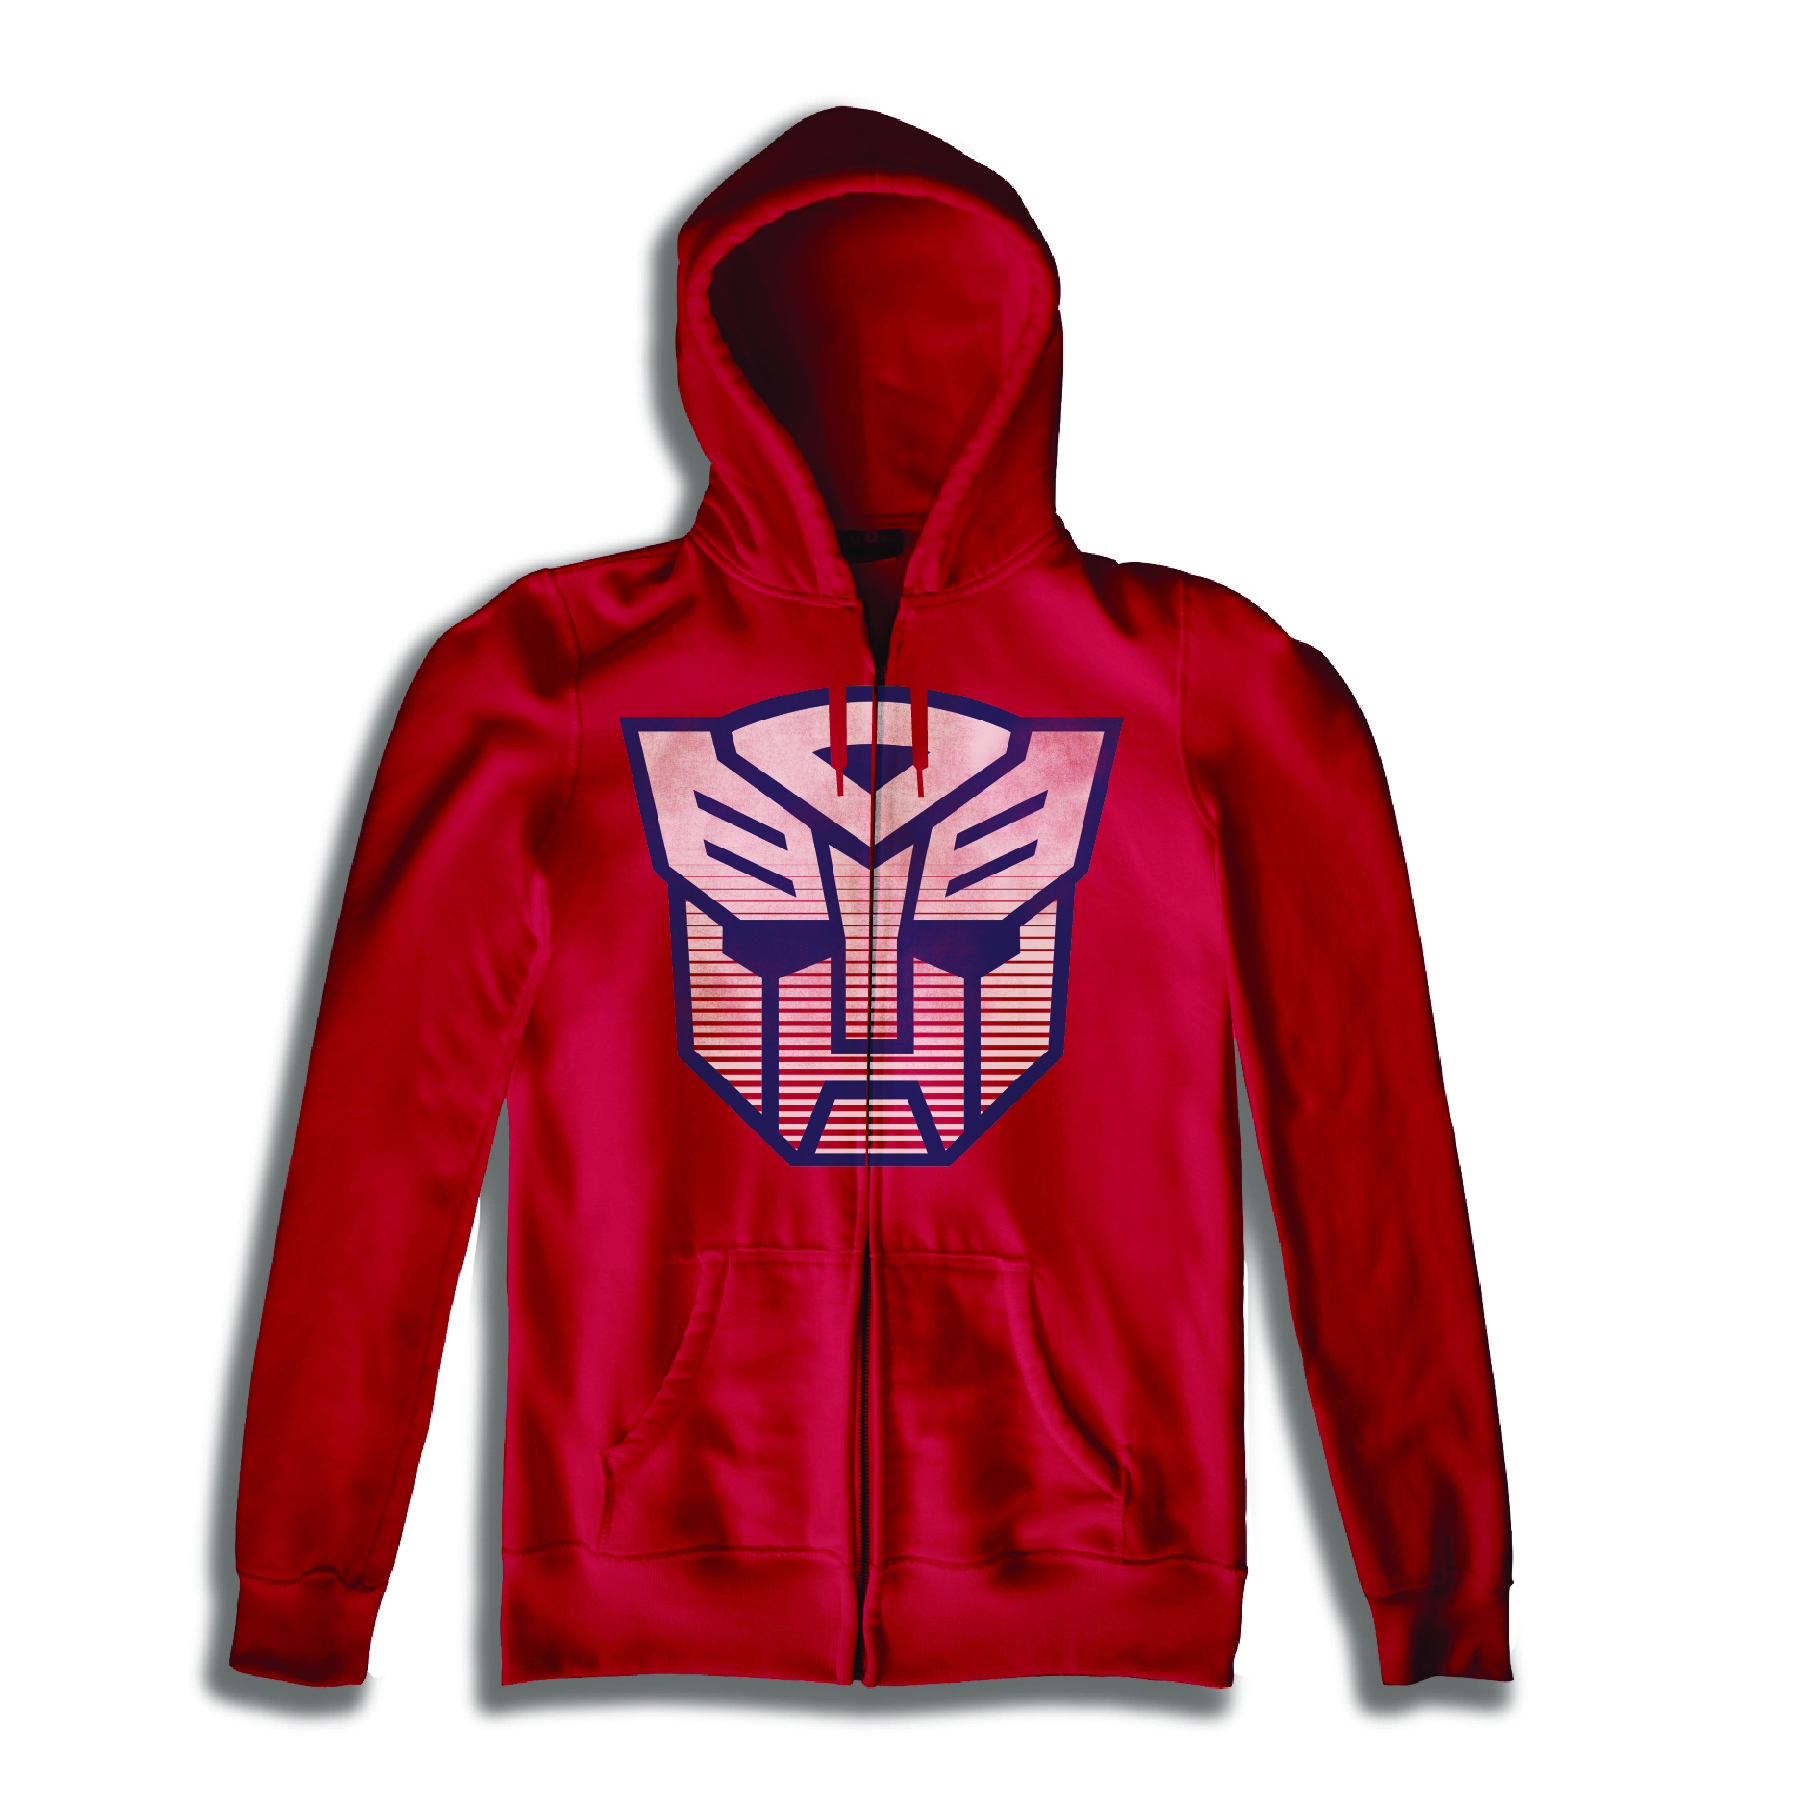 TRANSFORMERS AUTOBOT SYMBOL RED HOODIE XL